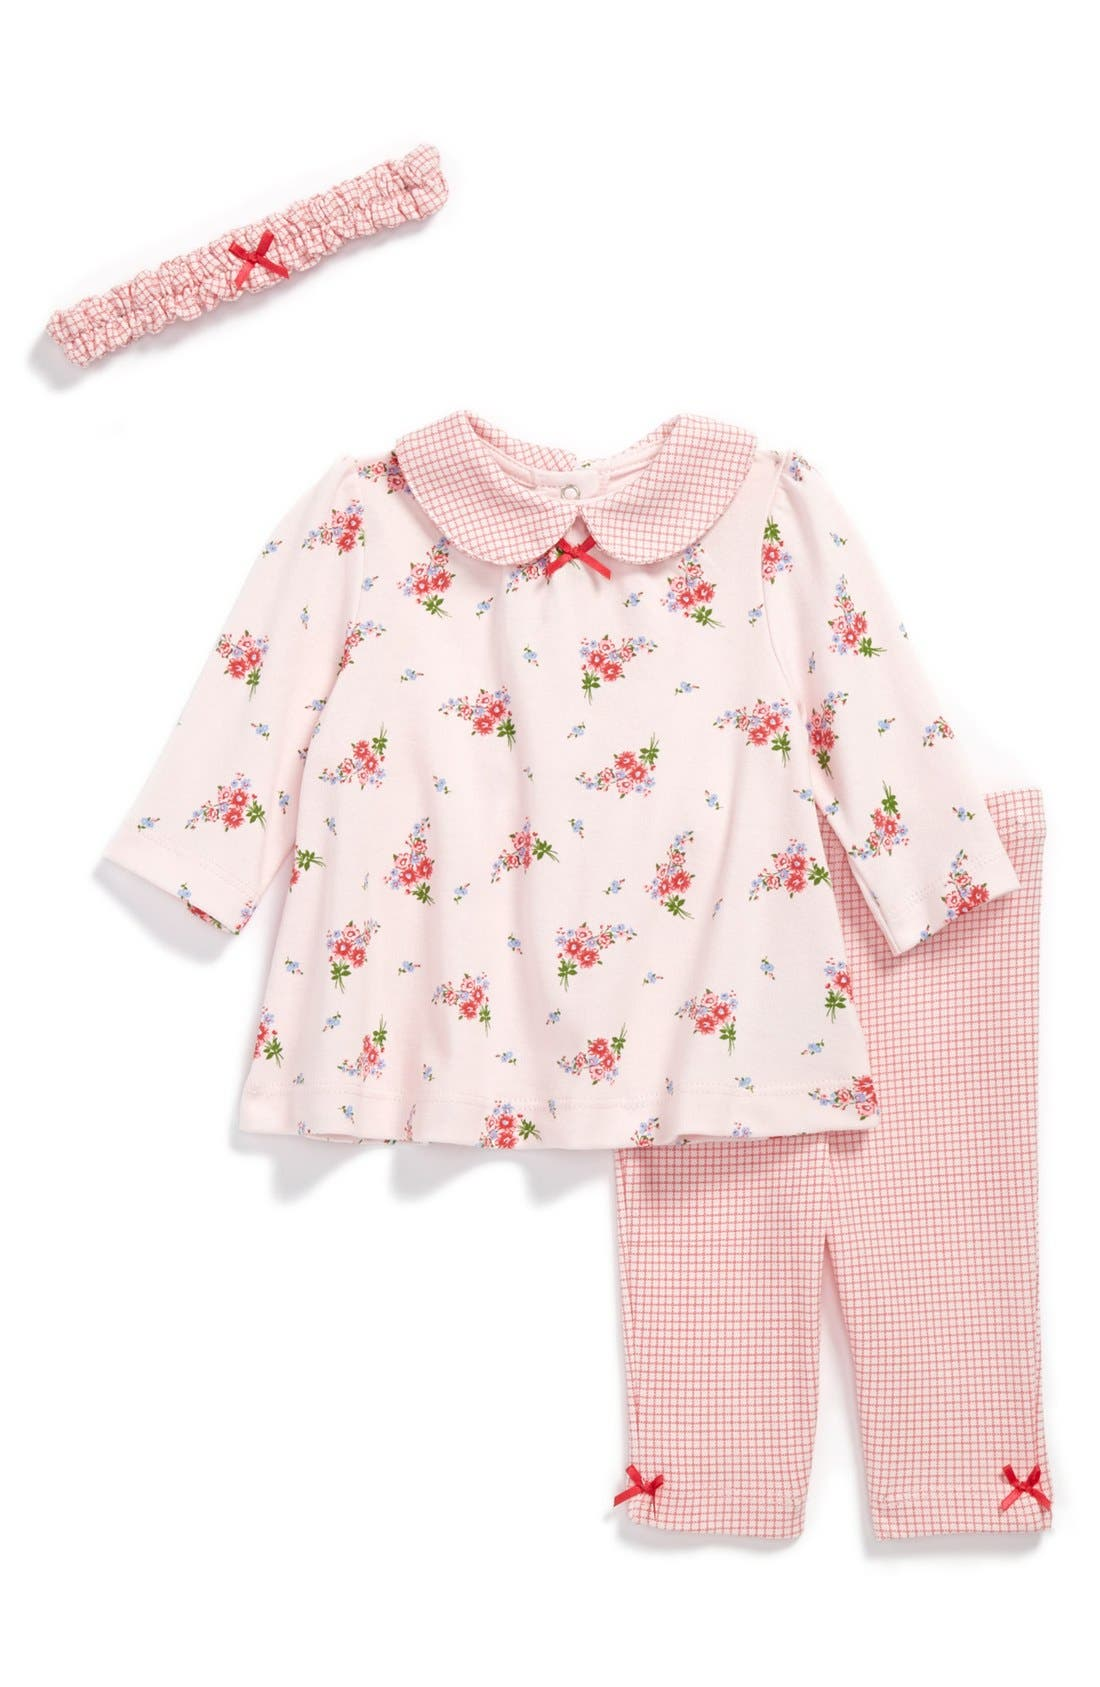 Alternate Image 1 Selected - Little Me 'Petite Posey' 3-Piece Set (Baby Girls)